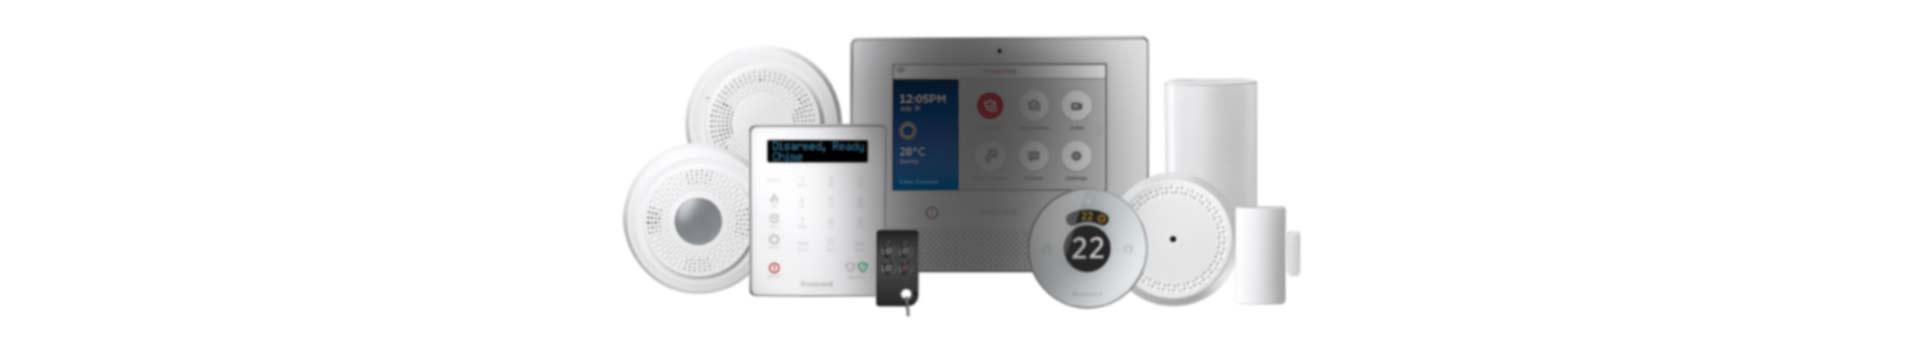 Honeywell Lyric family of devices